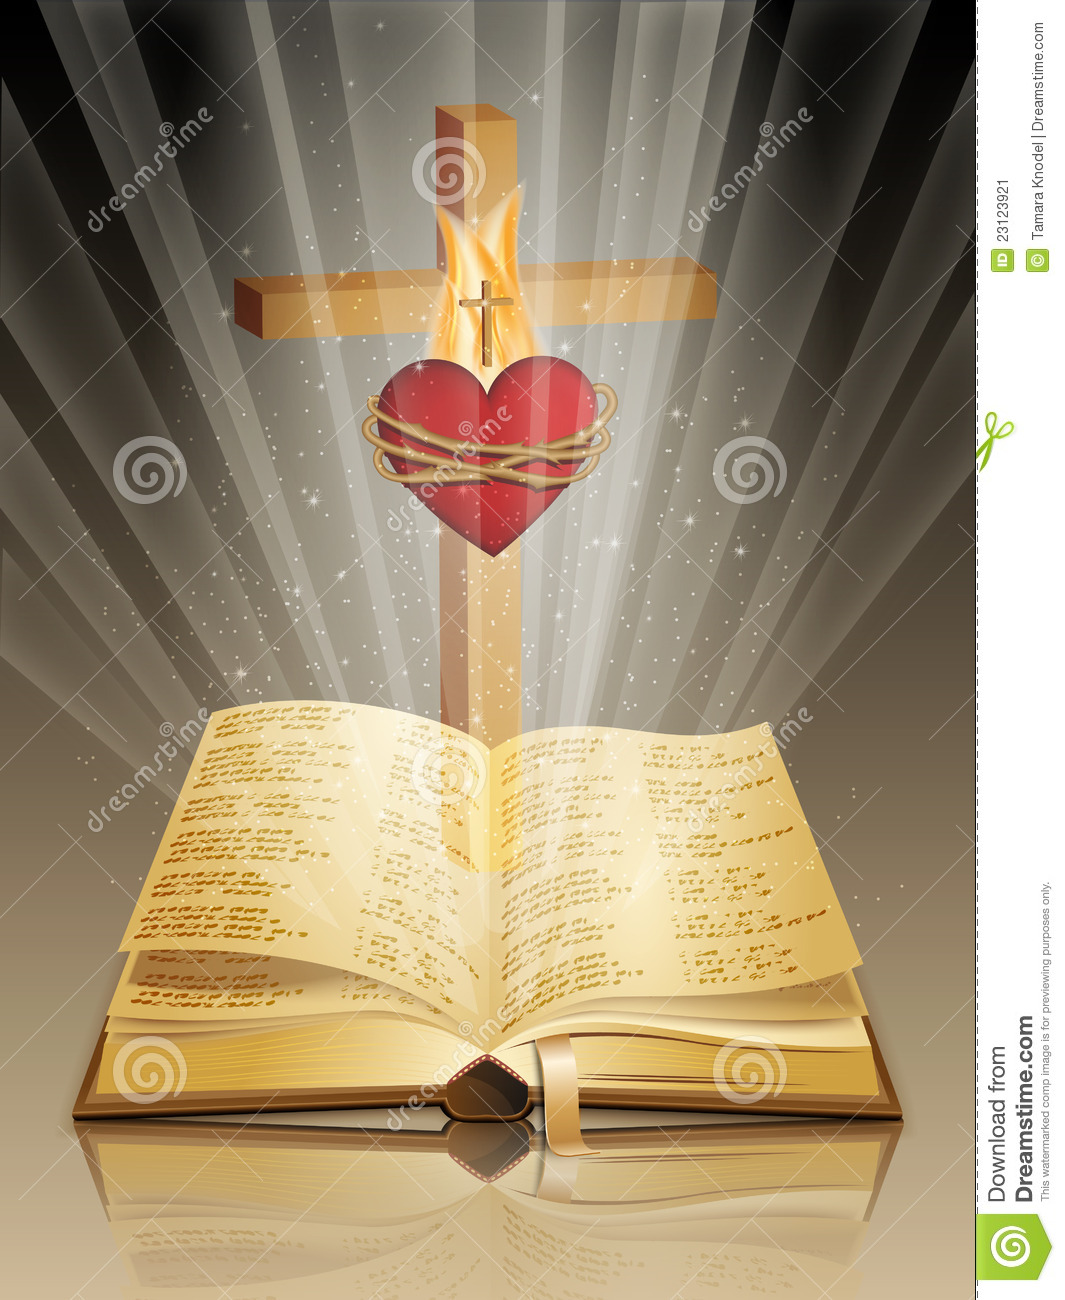 Bible With Cross And Sacred Heart Stock Image - Image: 23123921